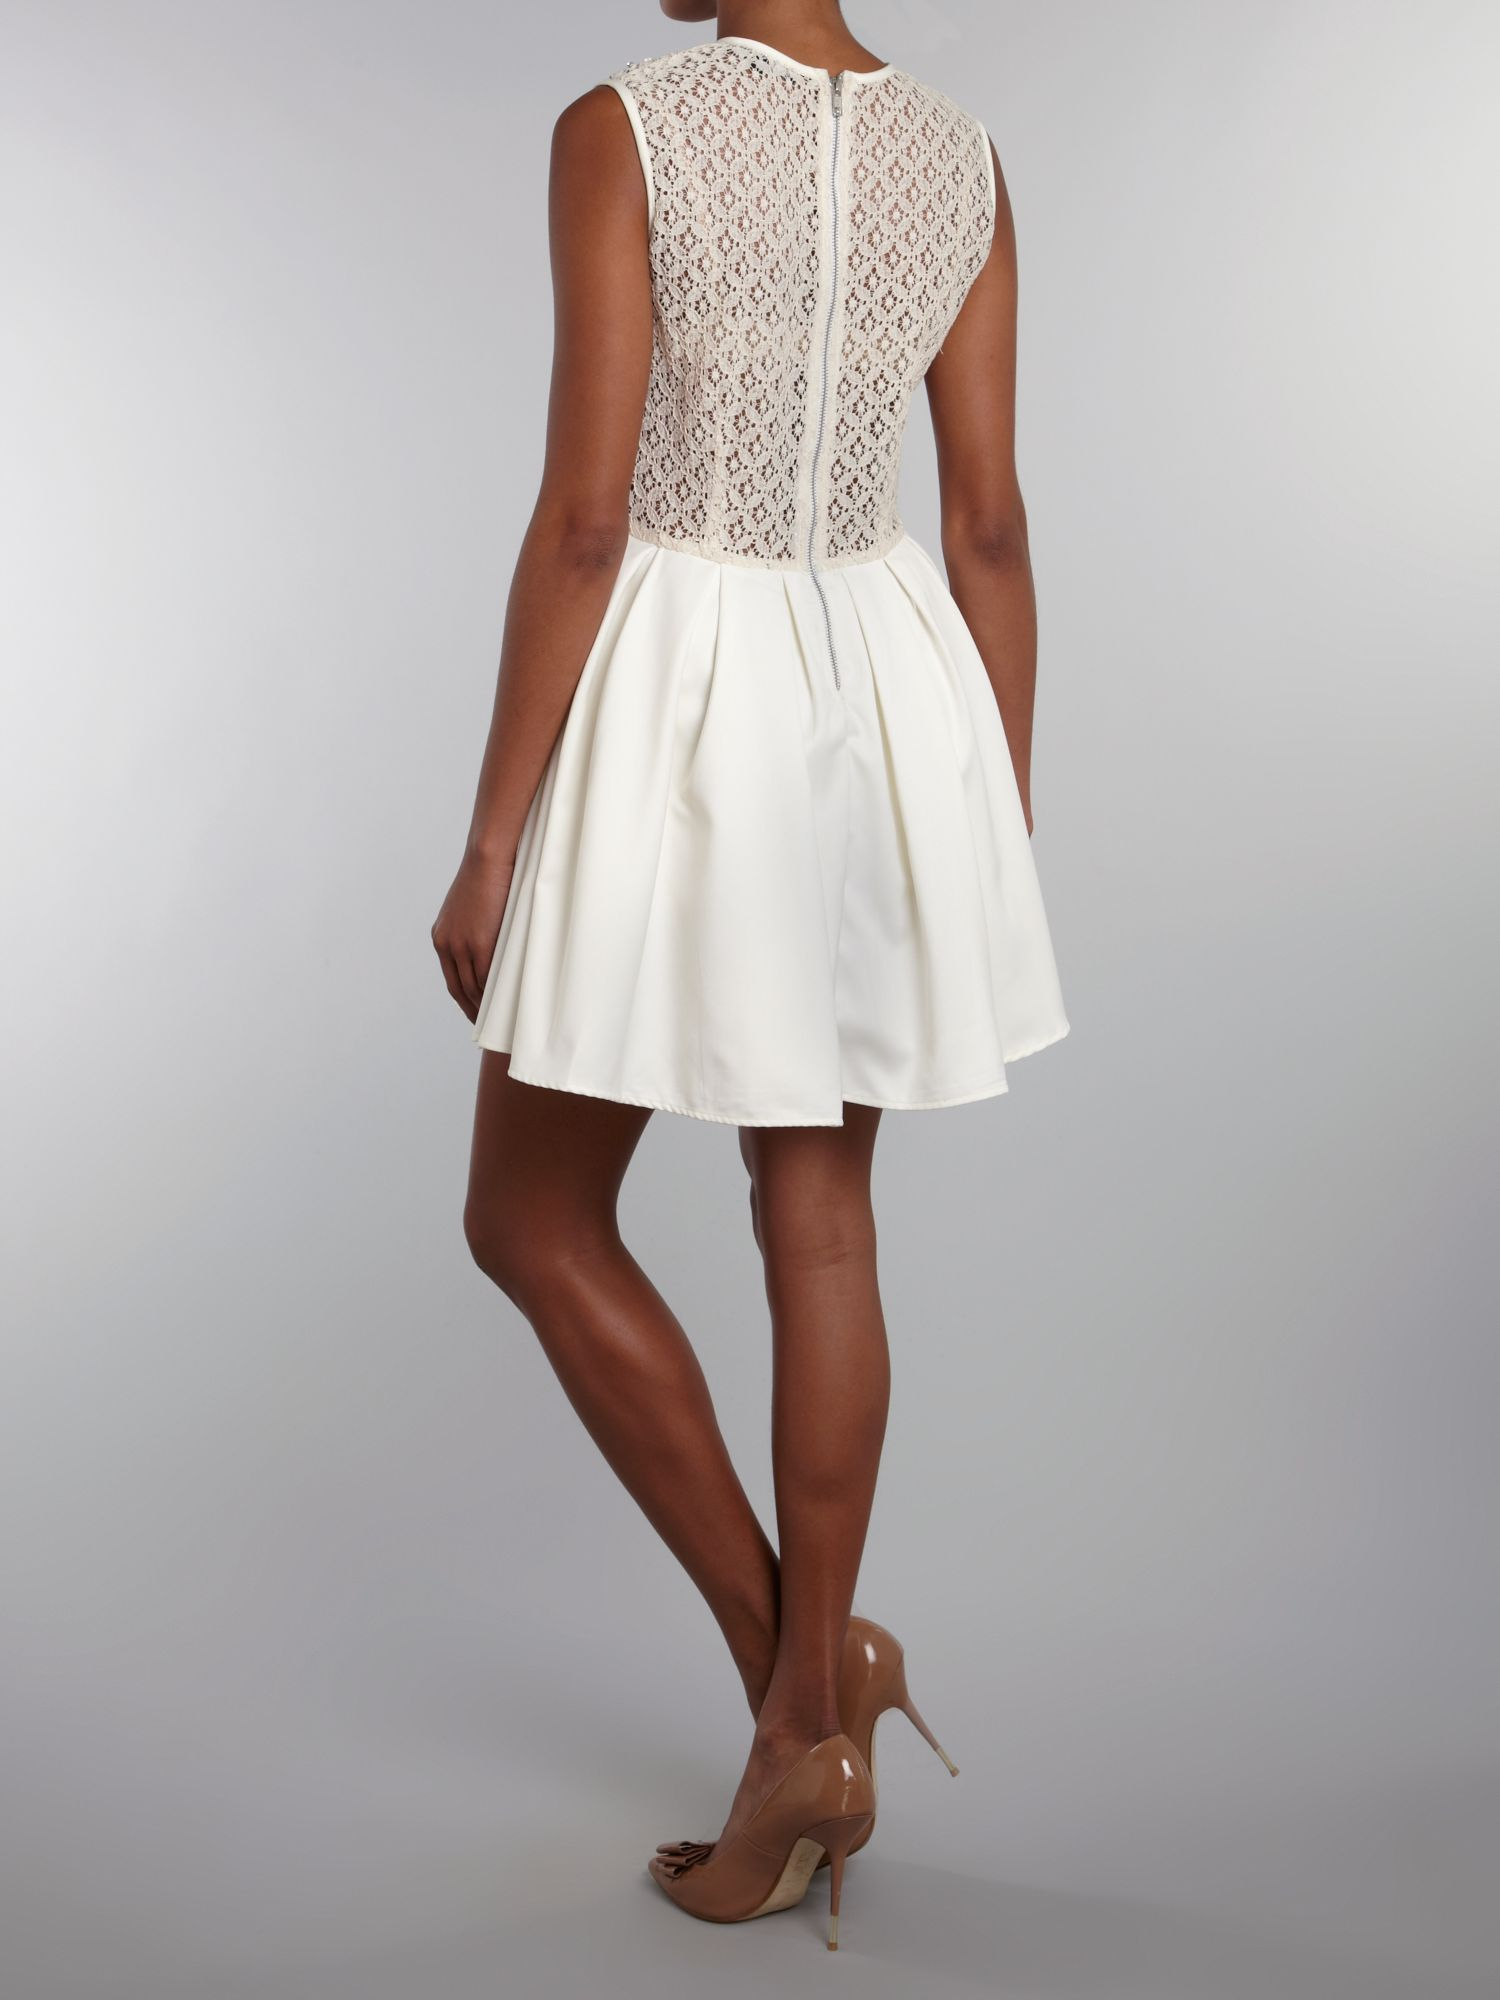 Tfnc Embellished Top Fit And Flare Dress In White Cream